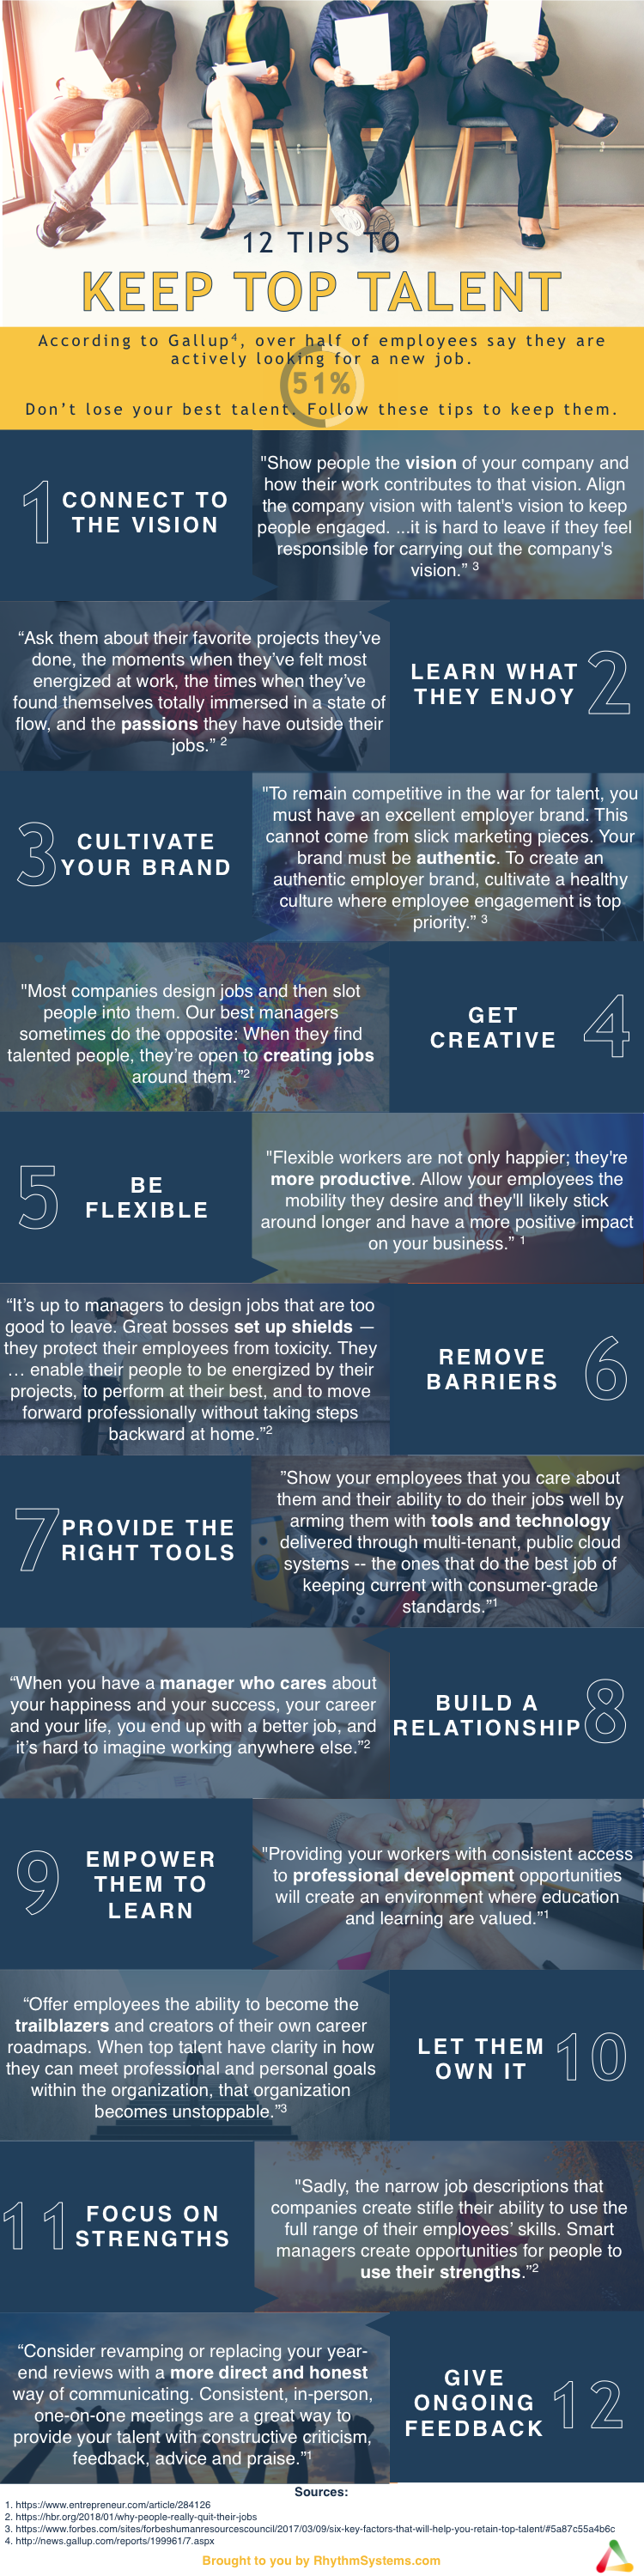 How to Attract and Keep Top Talent Infographic.png